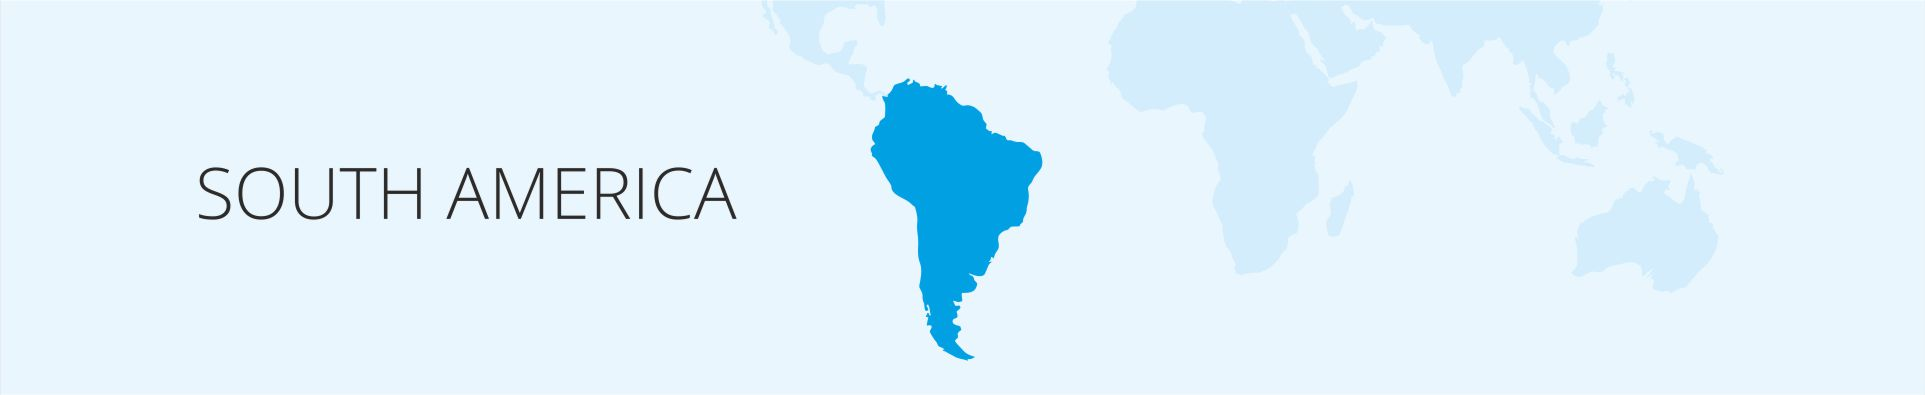 world South America